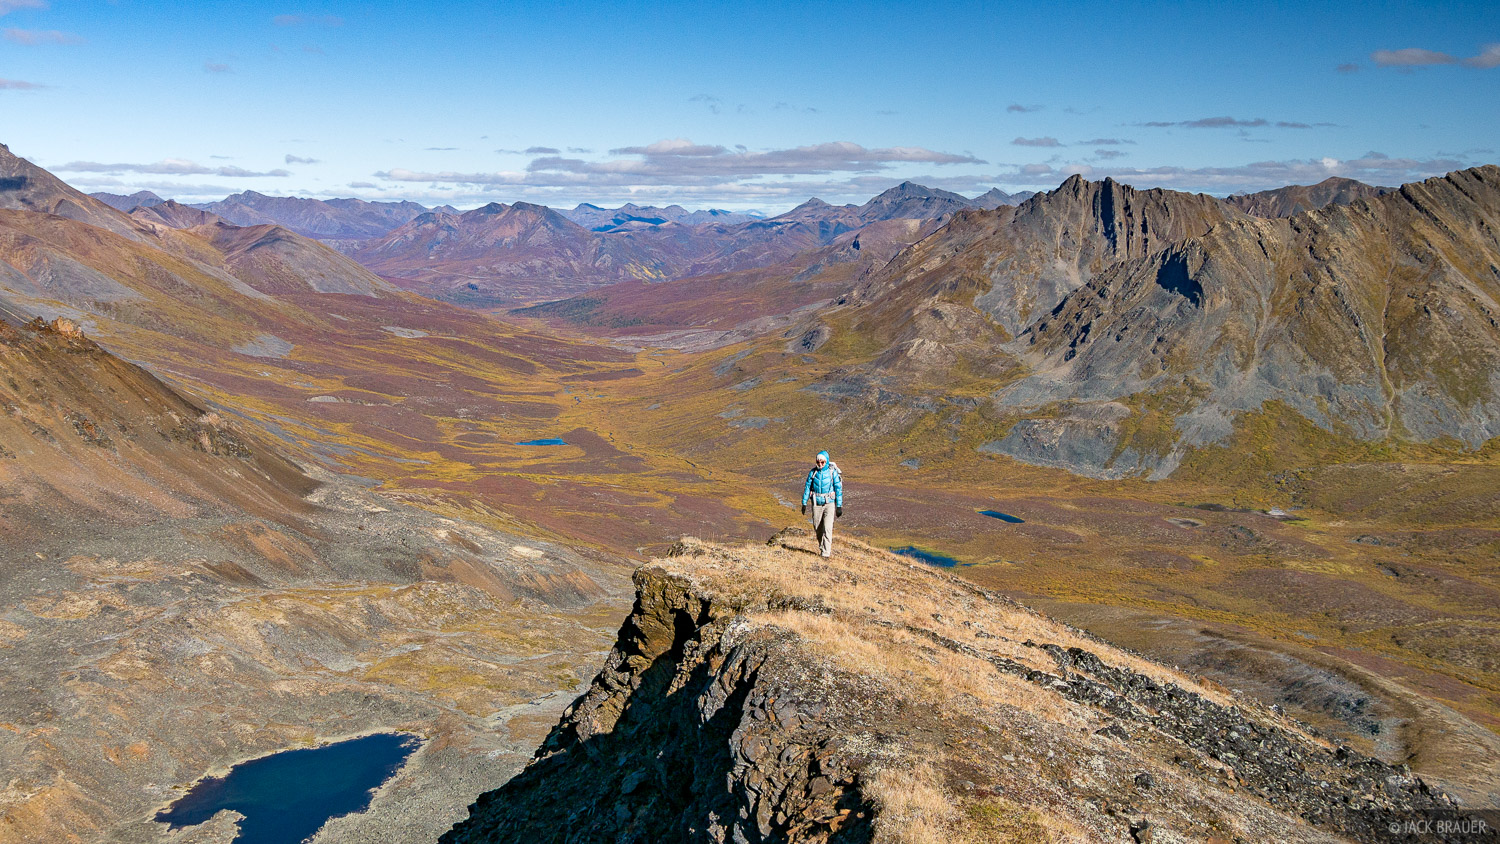 Canada, Mount Frank Rae, Tombstone Territorial Park, Yukon, hiking, North Klondike, Tombstone Range, photo